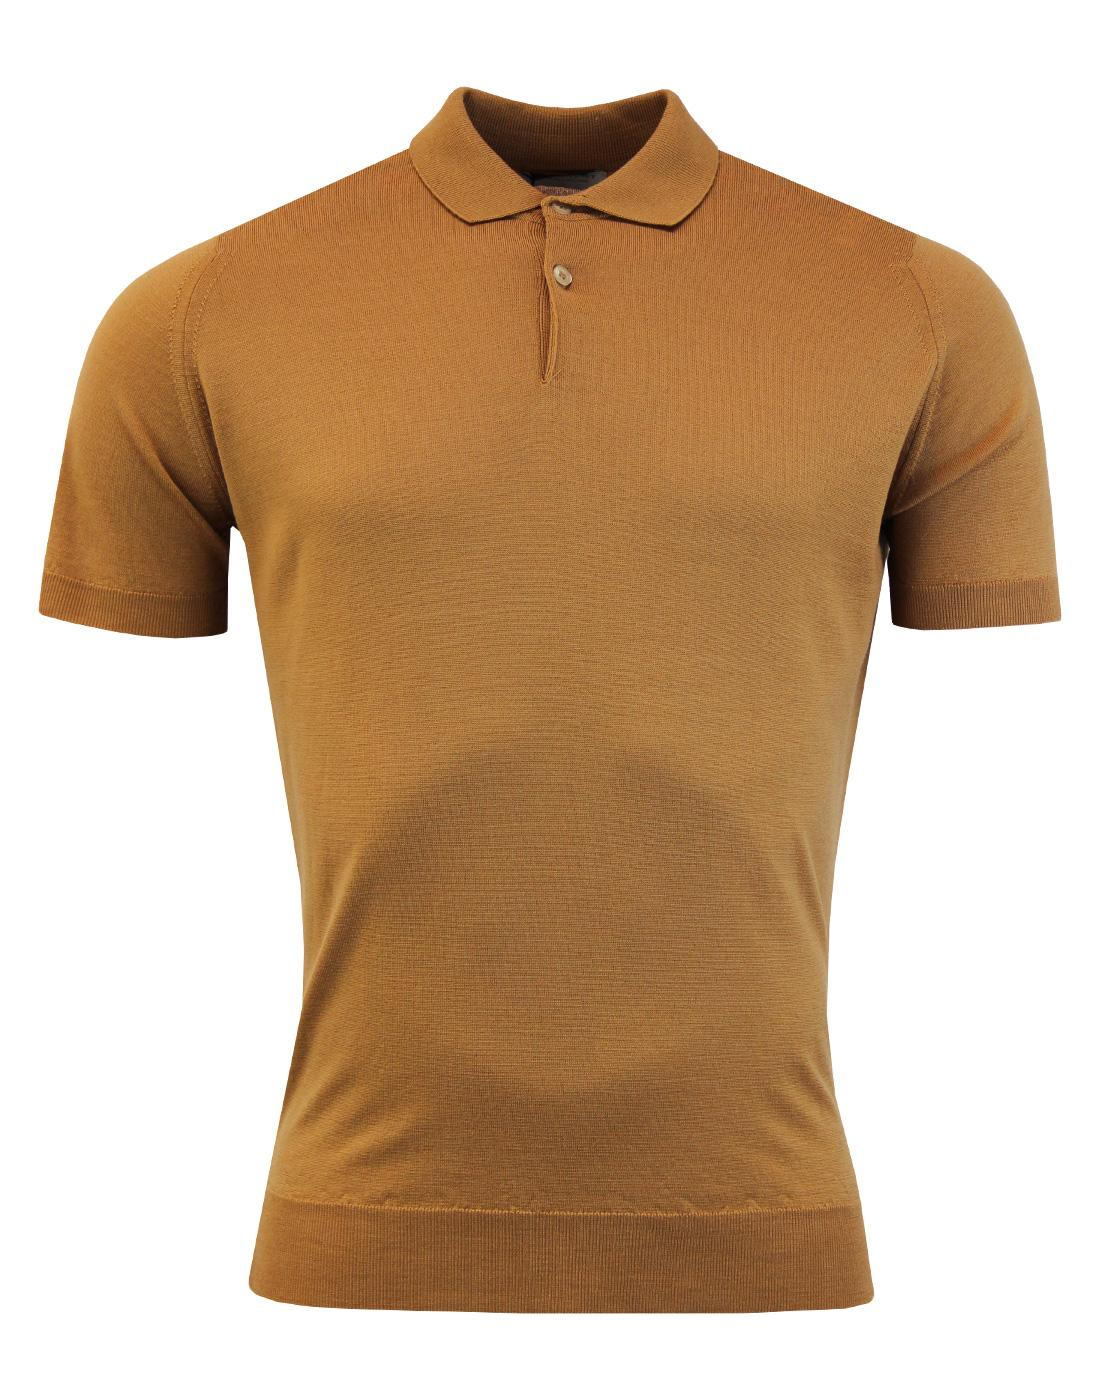 Payton JOHN SMEDLEY Made in England Knit Polo (C)